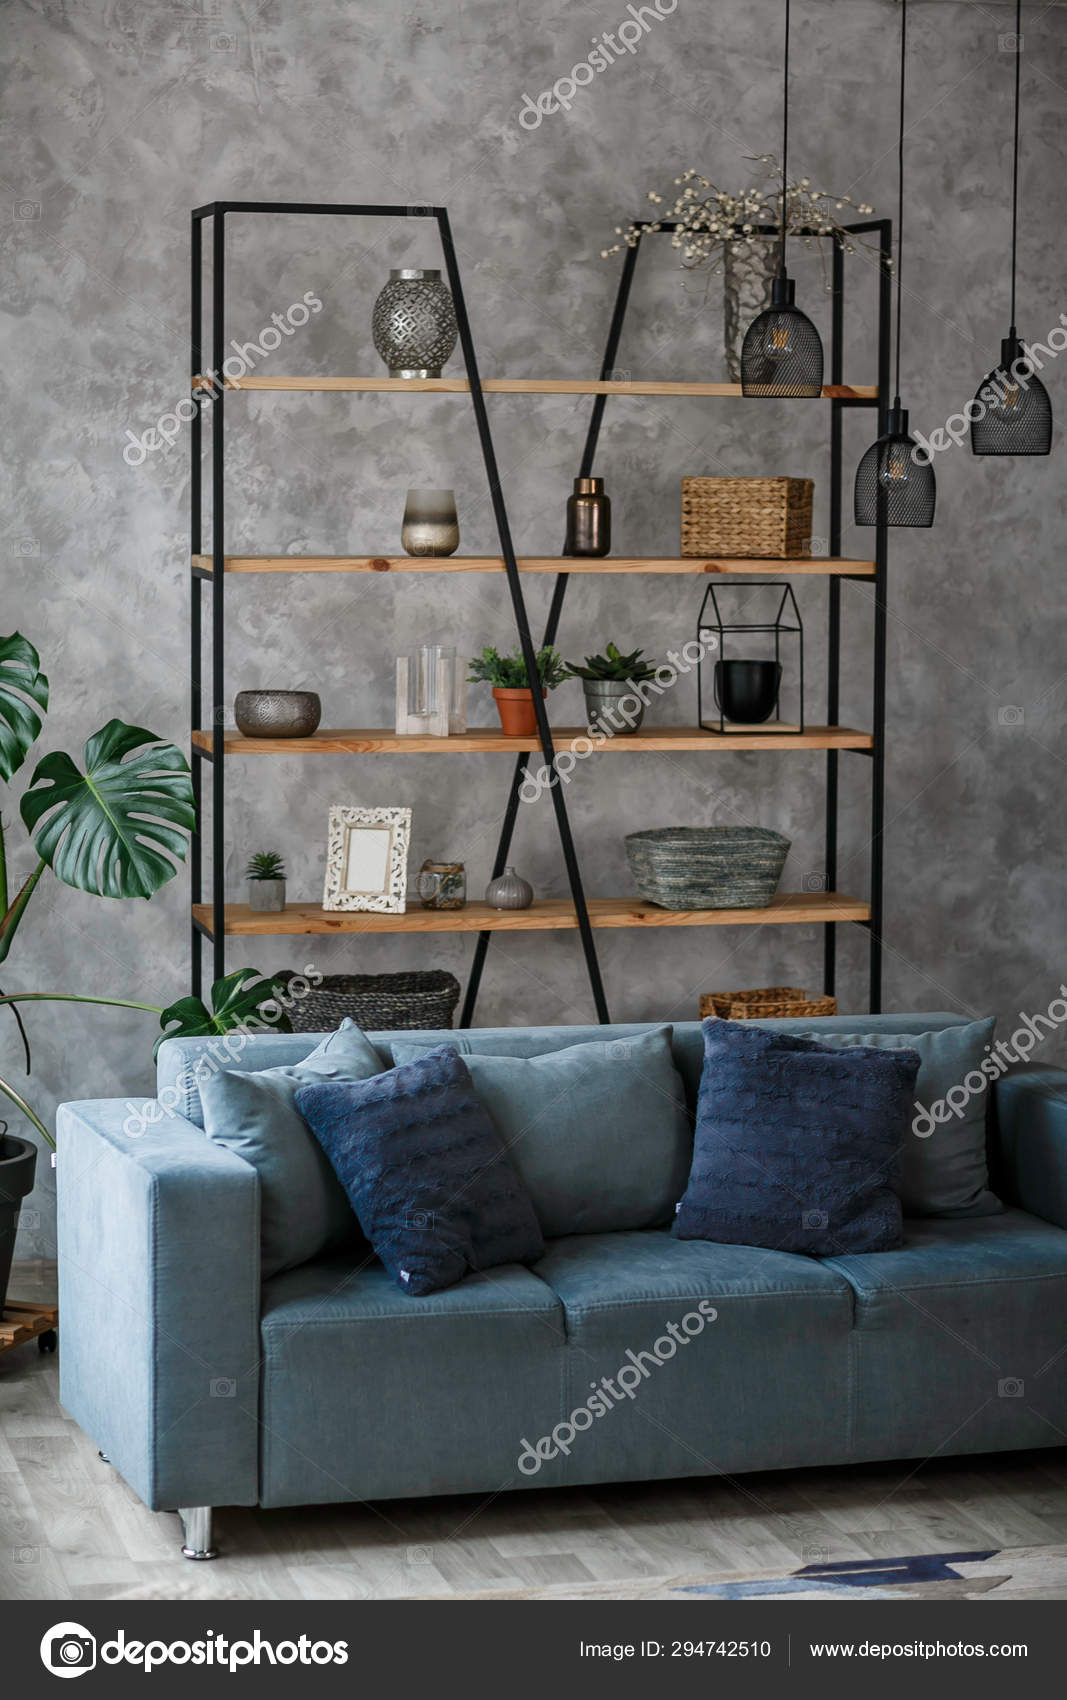 Modern Living Room Interior Blue Sofa Lamp Green Plants Grey Stock Photo Image By Pirotehnik 294742510